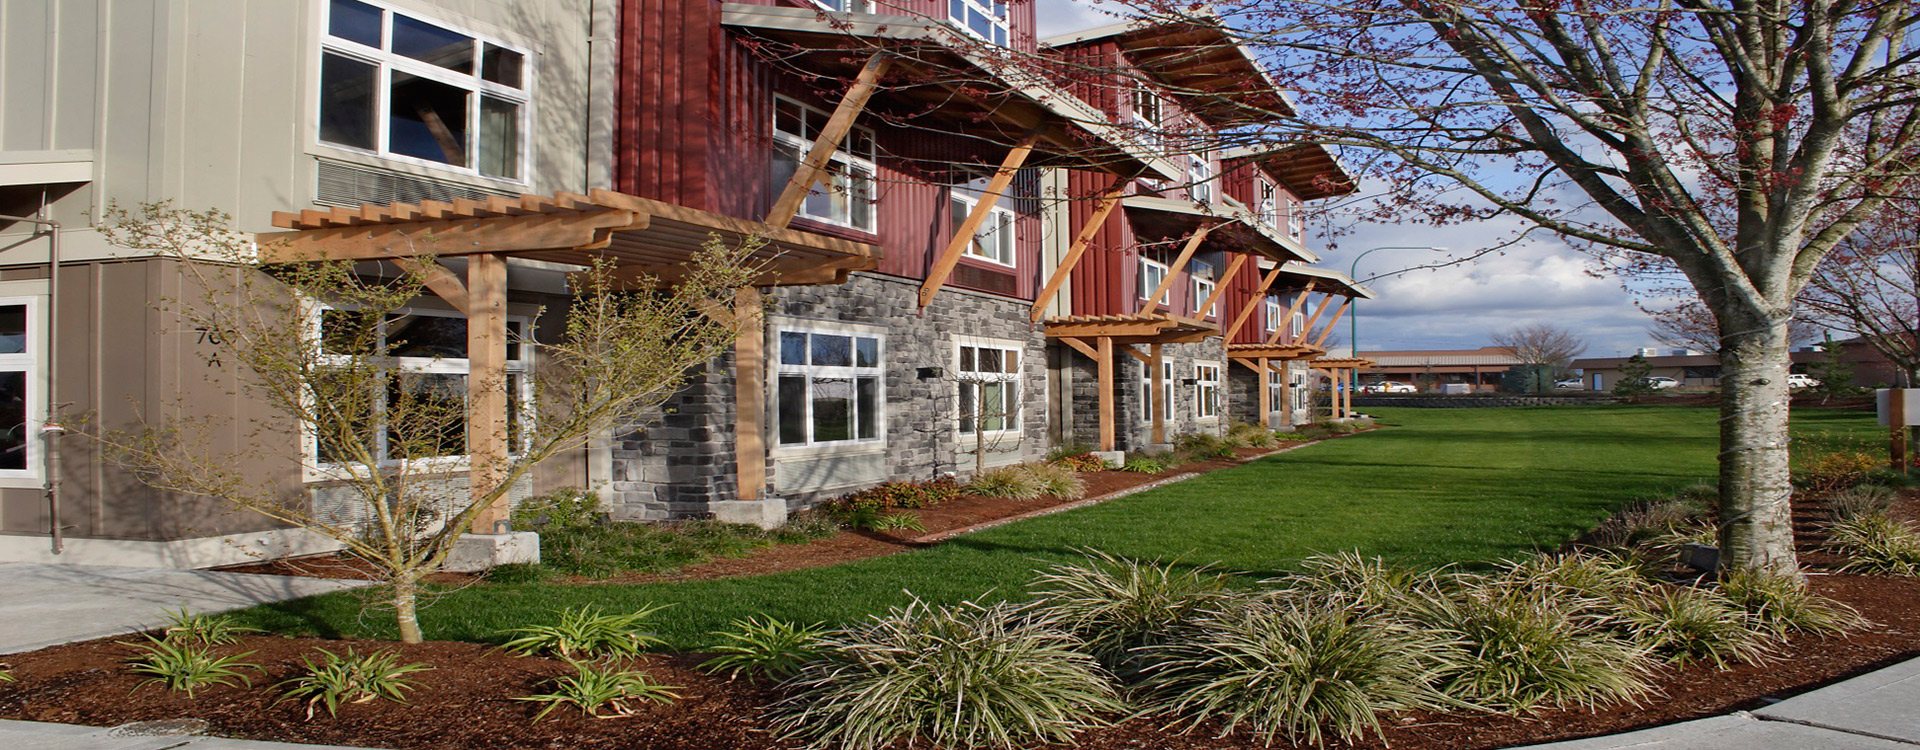 Photo gallery prairie hotel in yelm wa